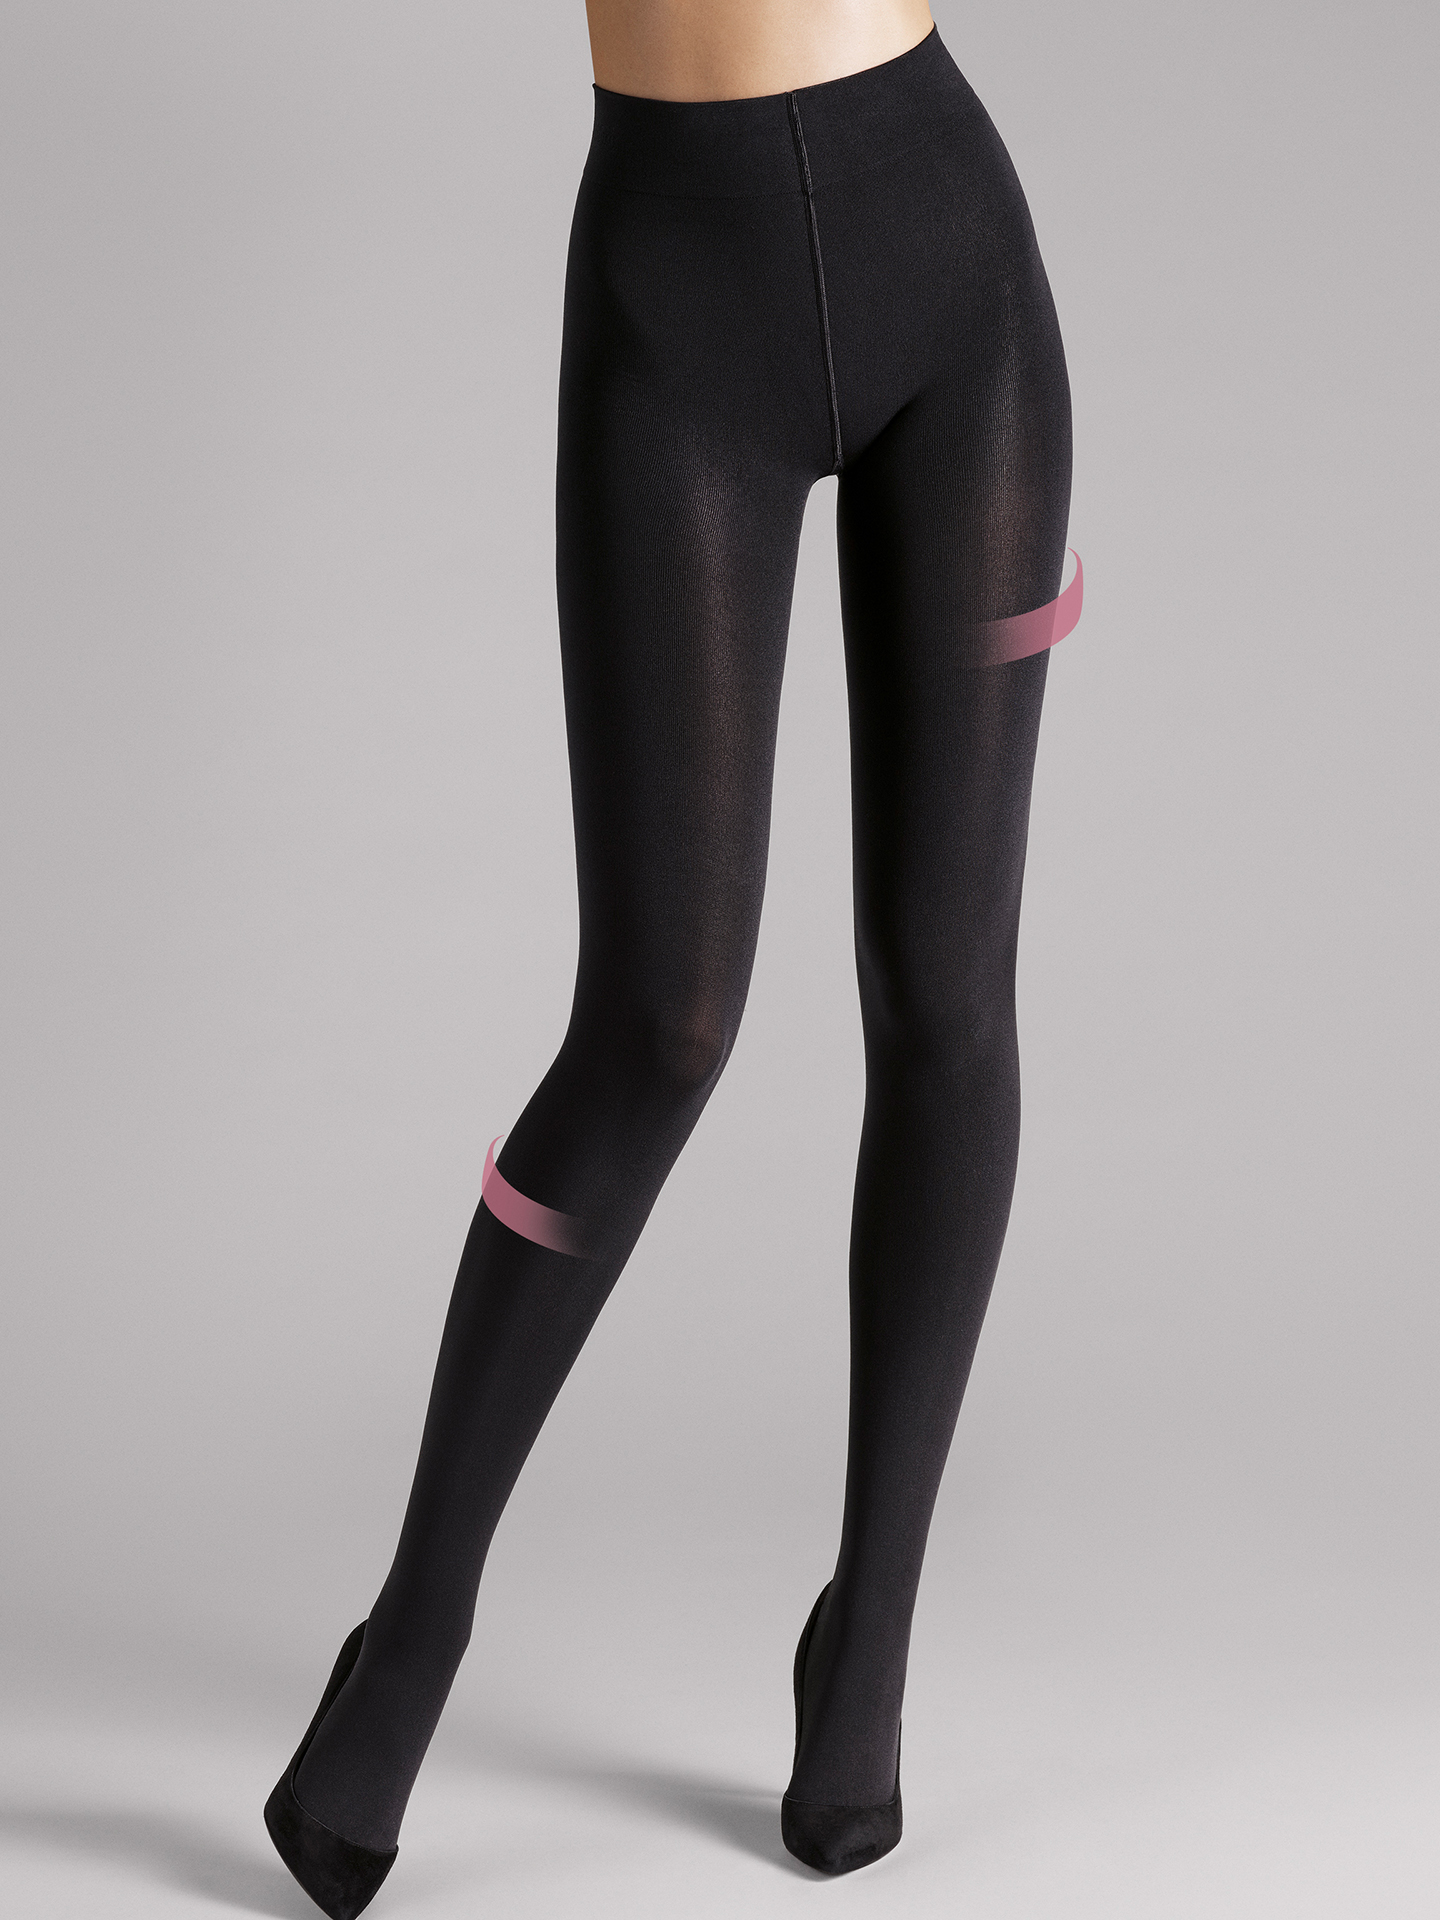 Wolford Apparel & Accessories > Clothing > Collant Ind. 100 Leg Support Tights - 7005 - XS